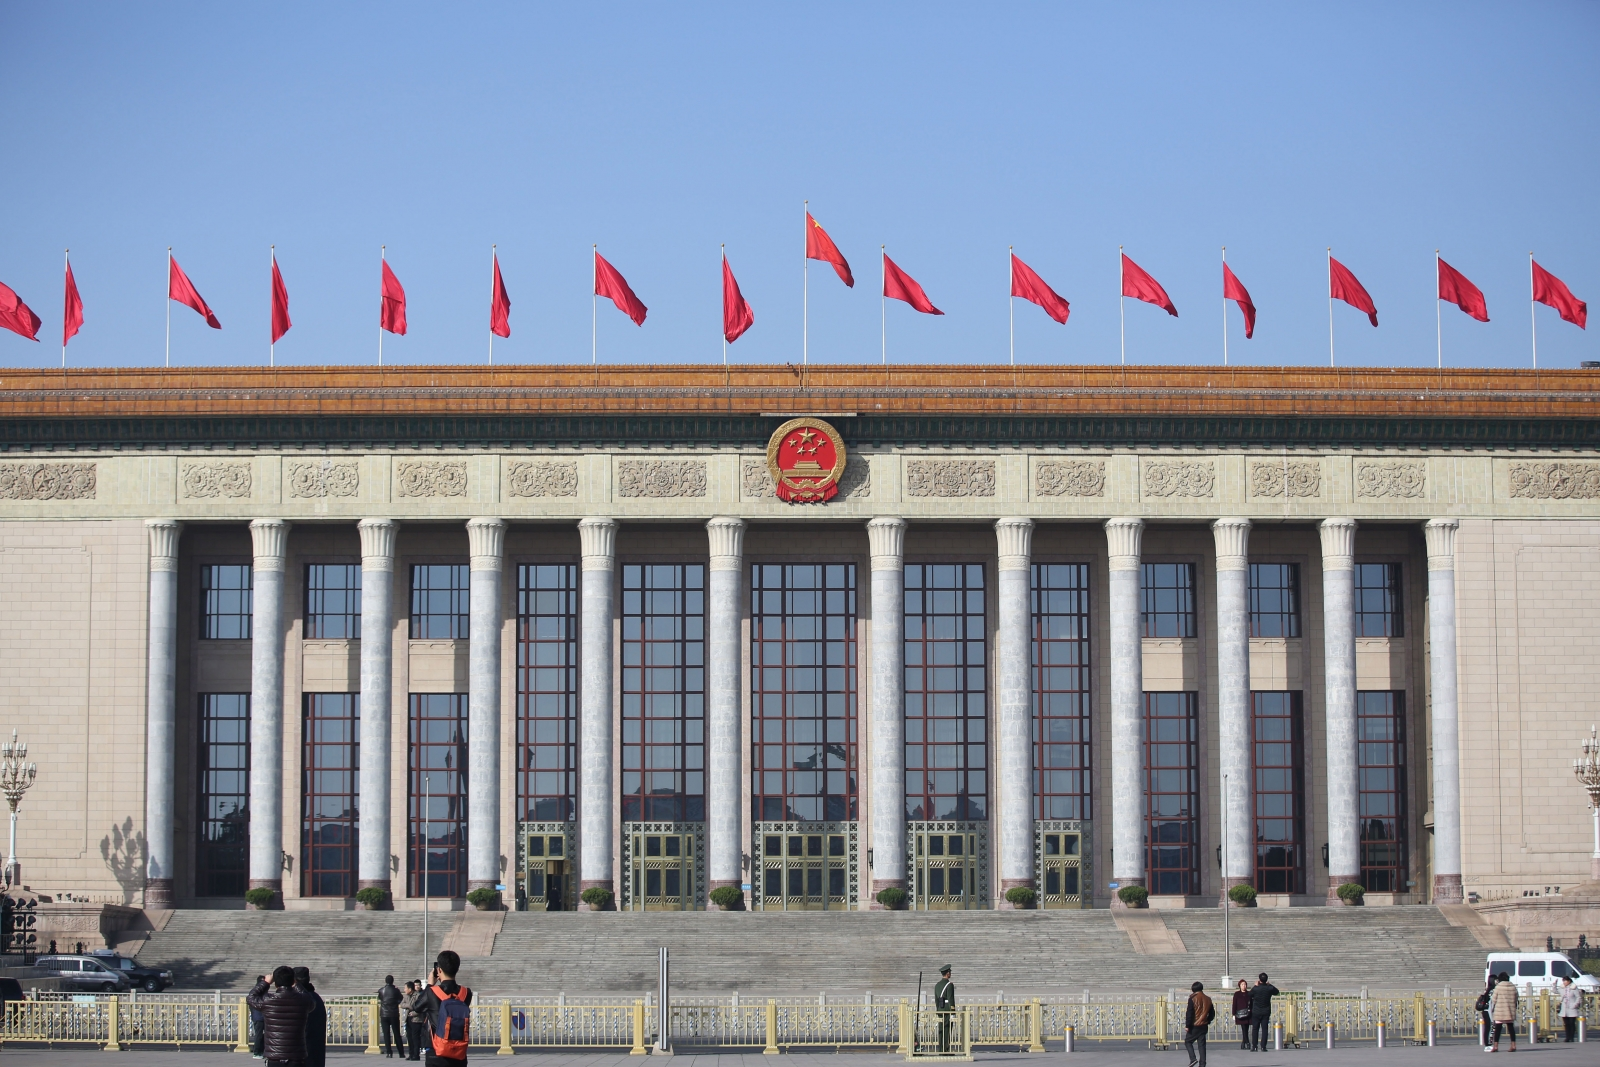 Fifth Session of the 12th CPPCC National Committee